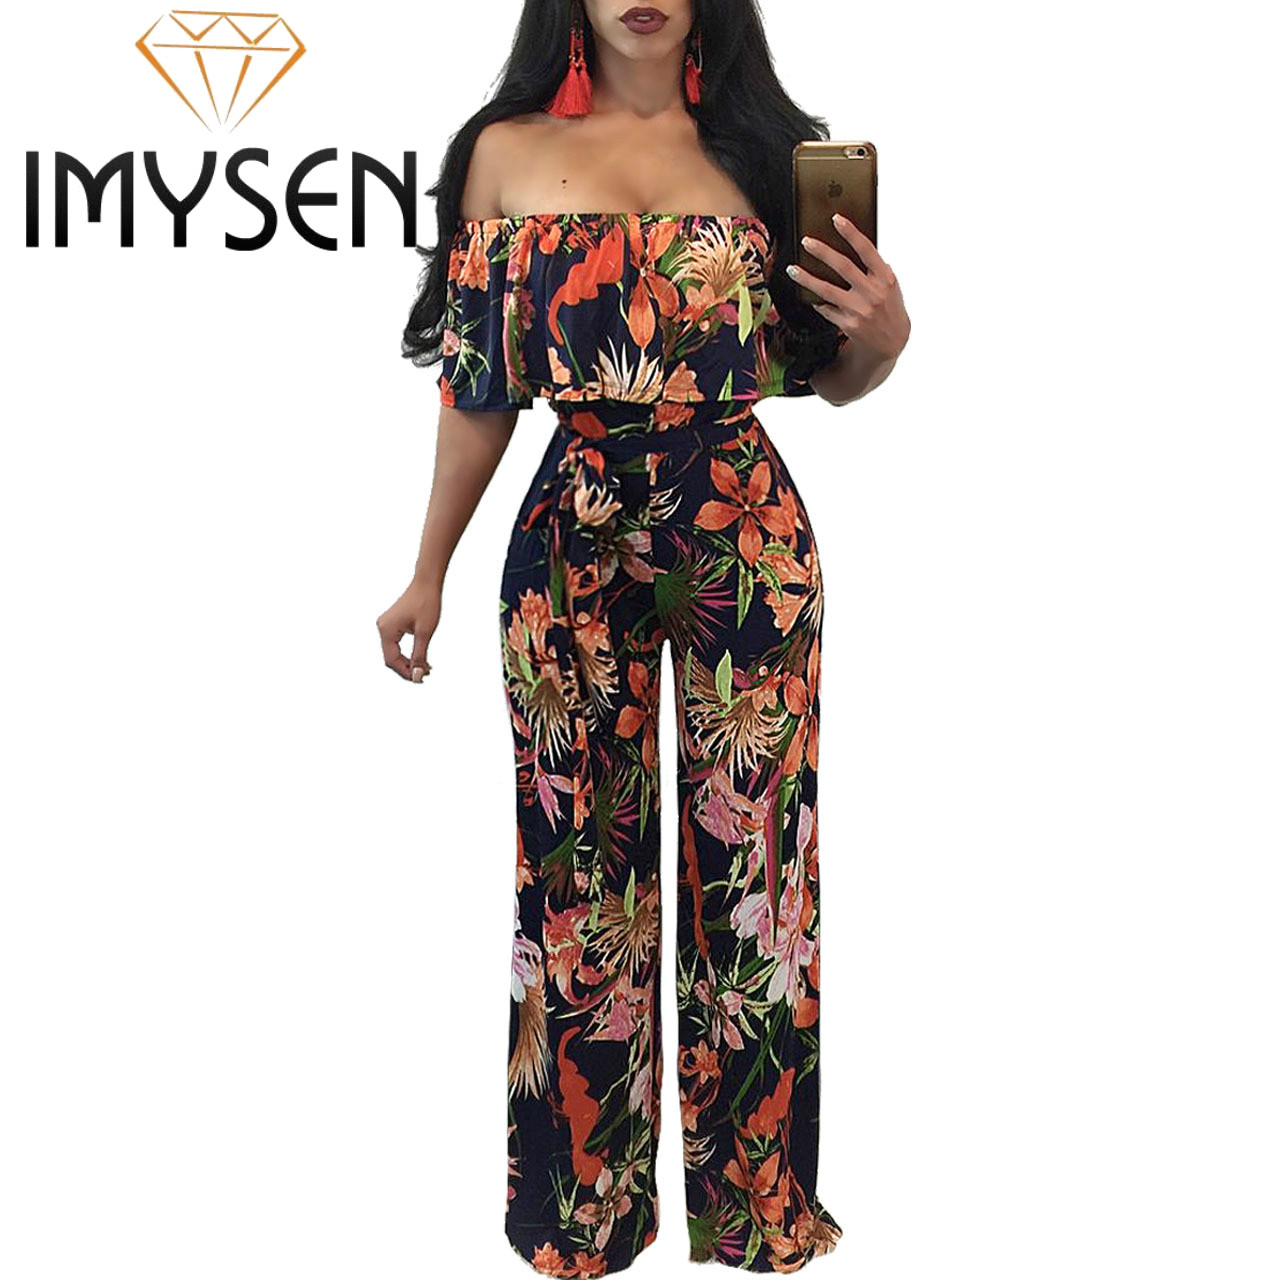 IMYSEN Summer Autumn Printed Sexy Jumpsuit Women Romper Straight Collar Off Shoulder One Piece Jumpsuits One